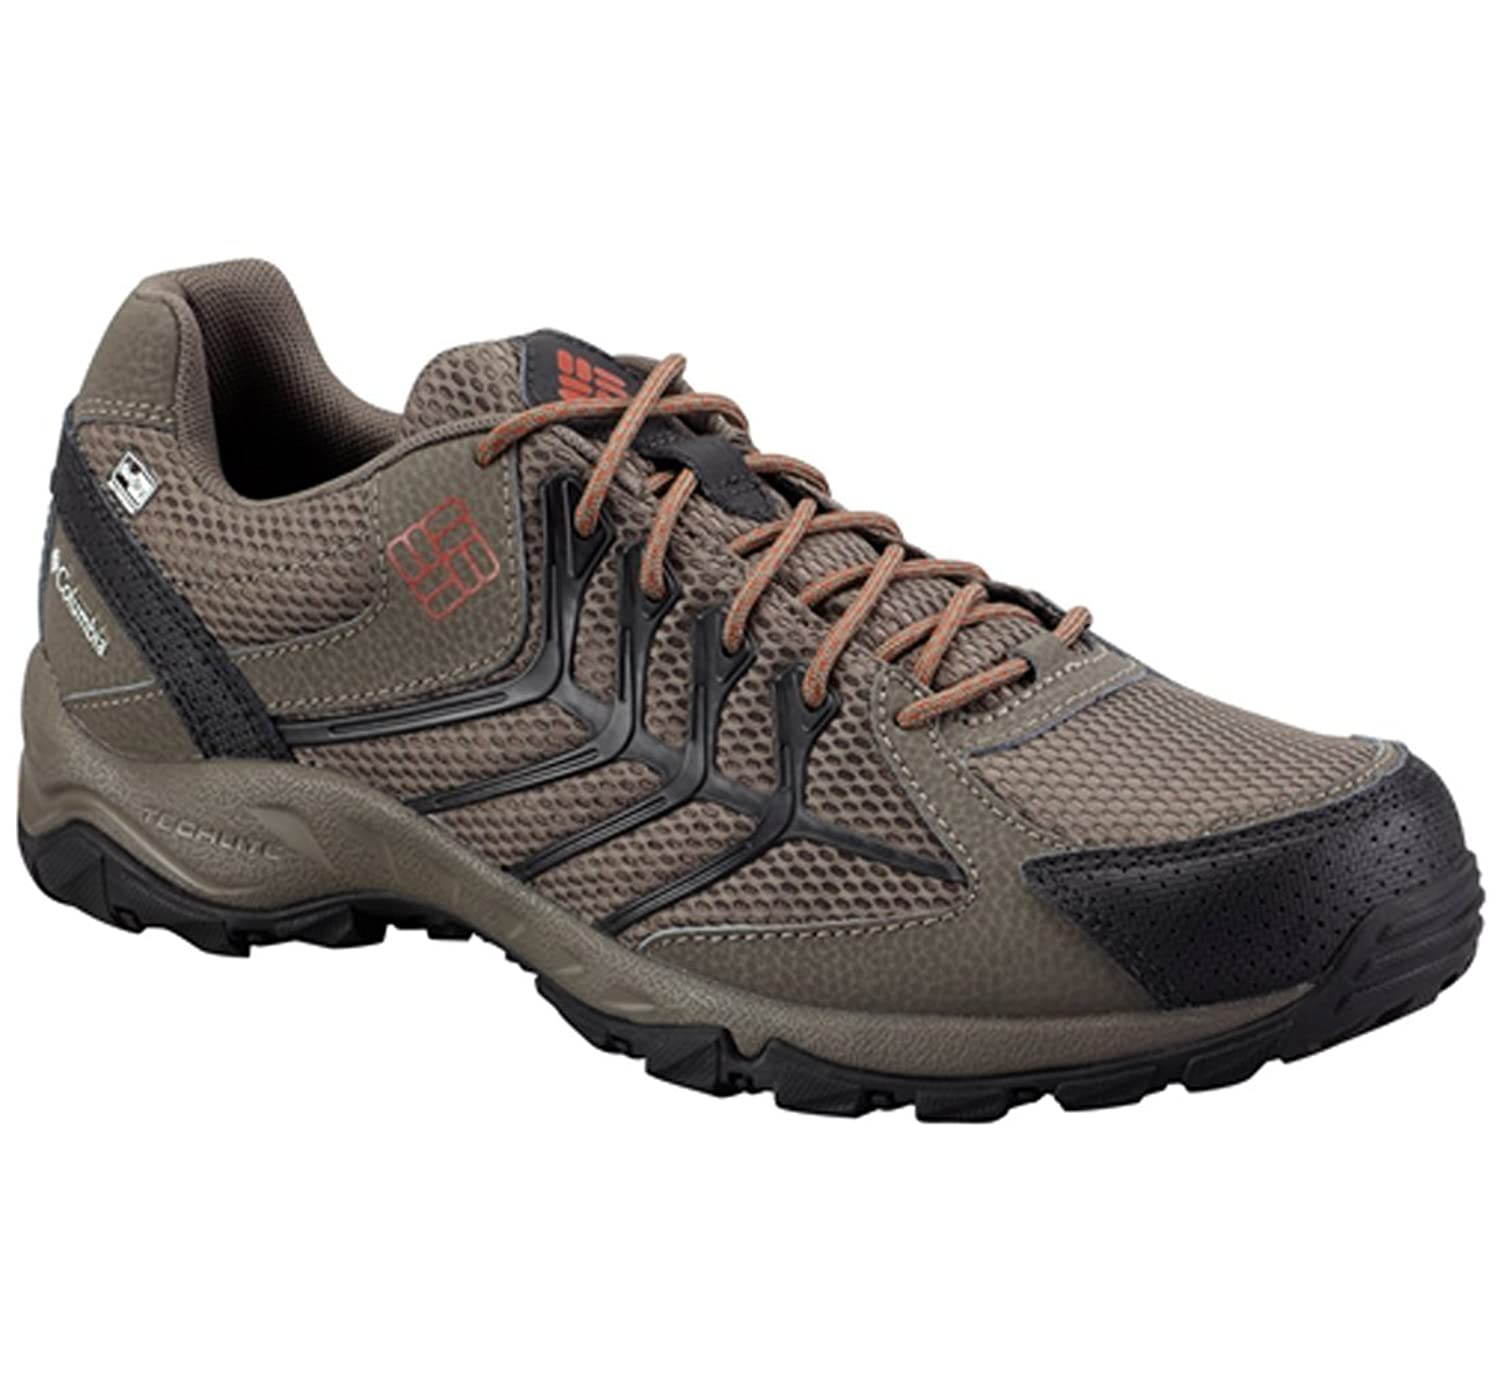 4e8db318b04a low-cost Columbia Men s Trailhawk Outdry Mesh Hiking Sneakers ...